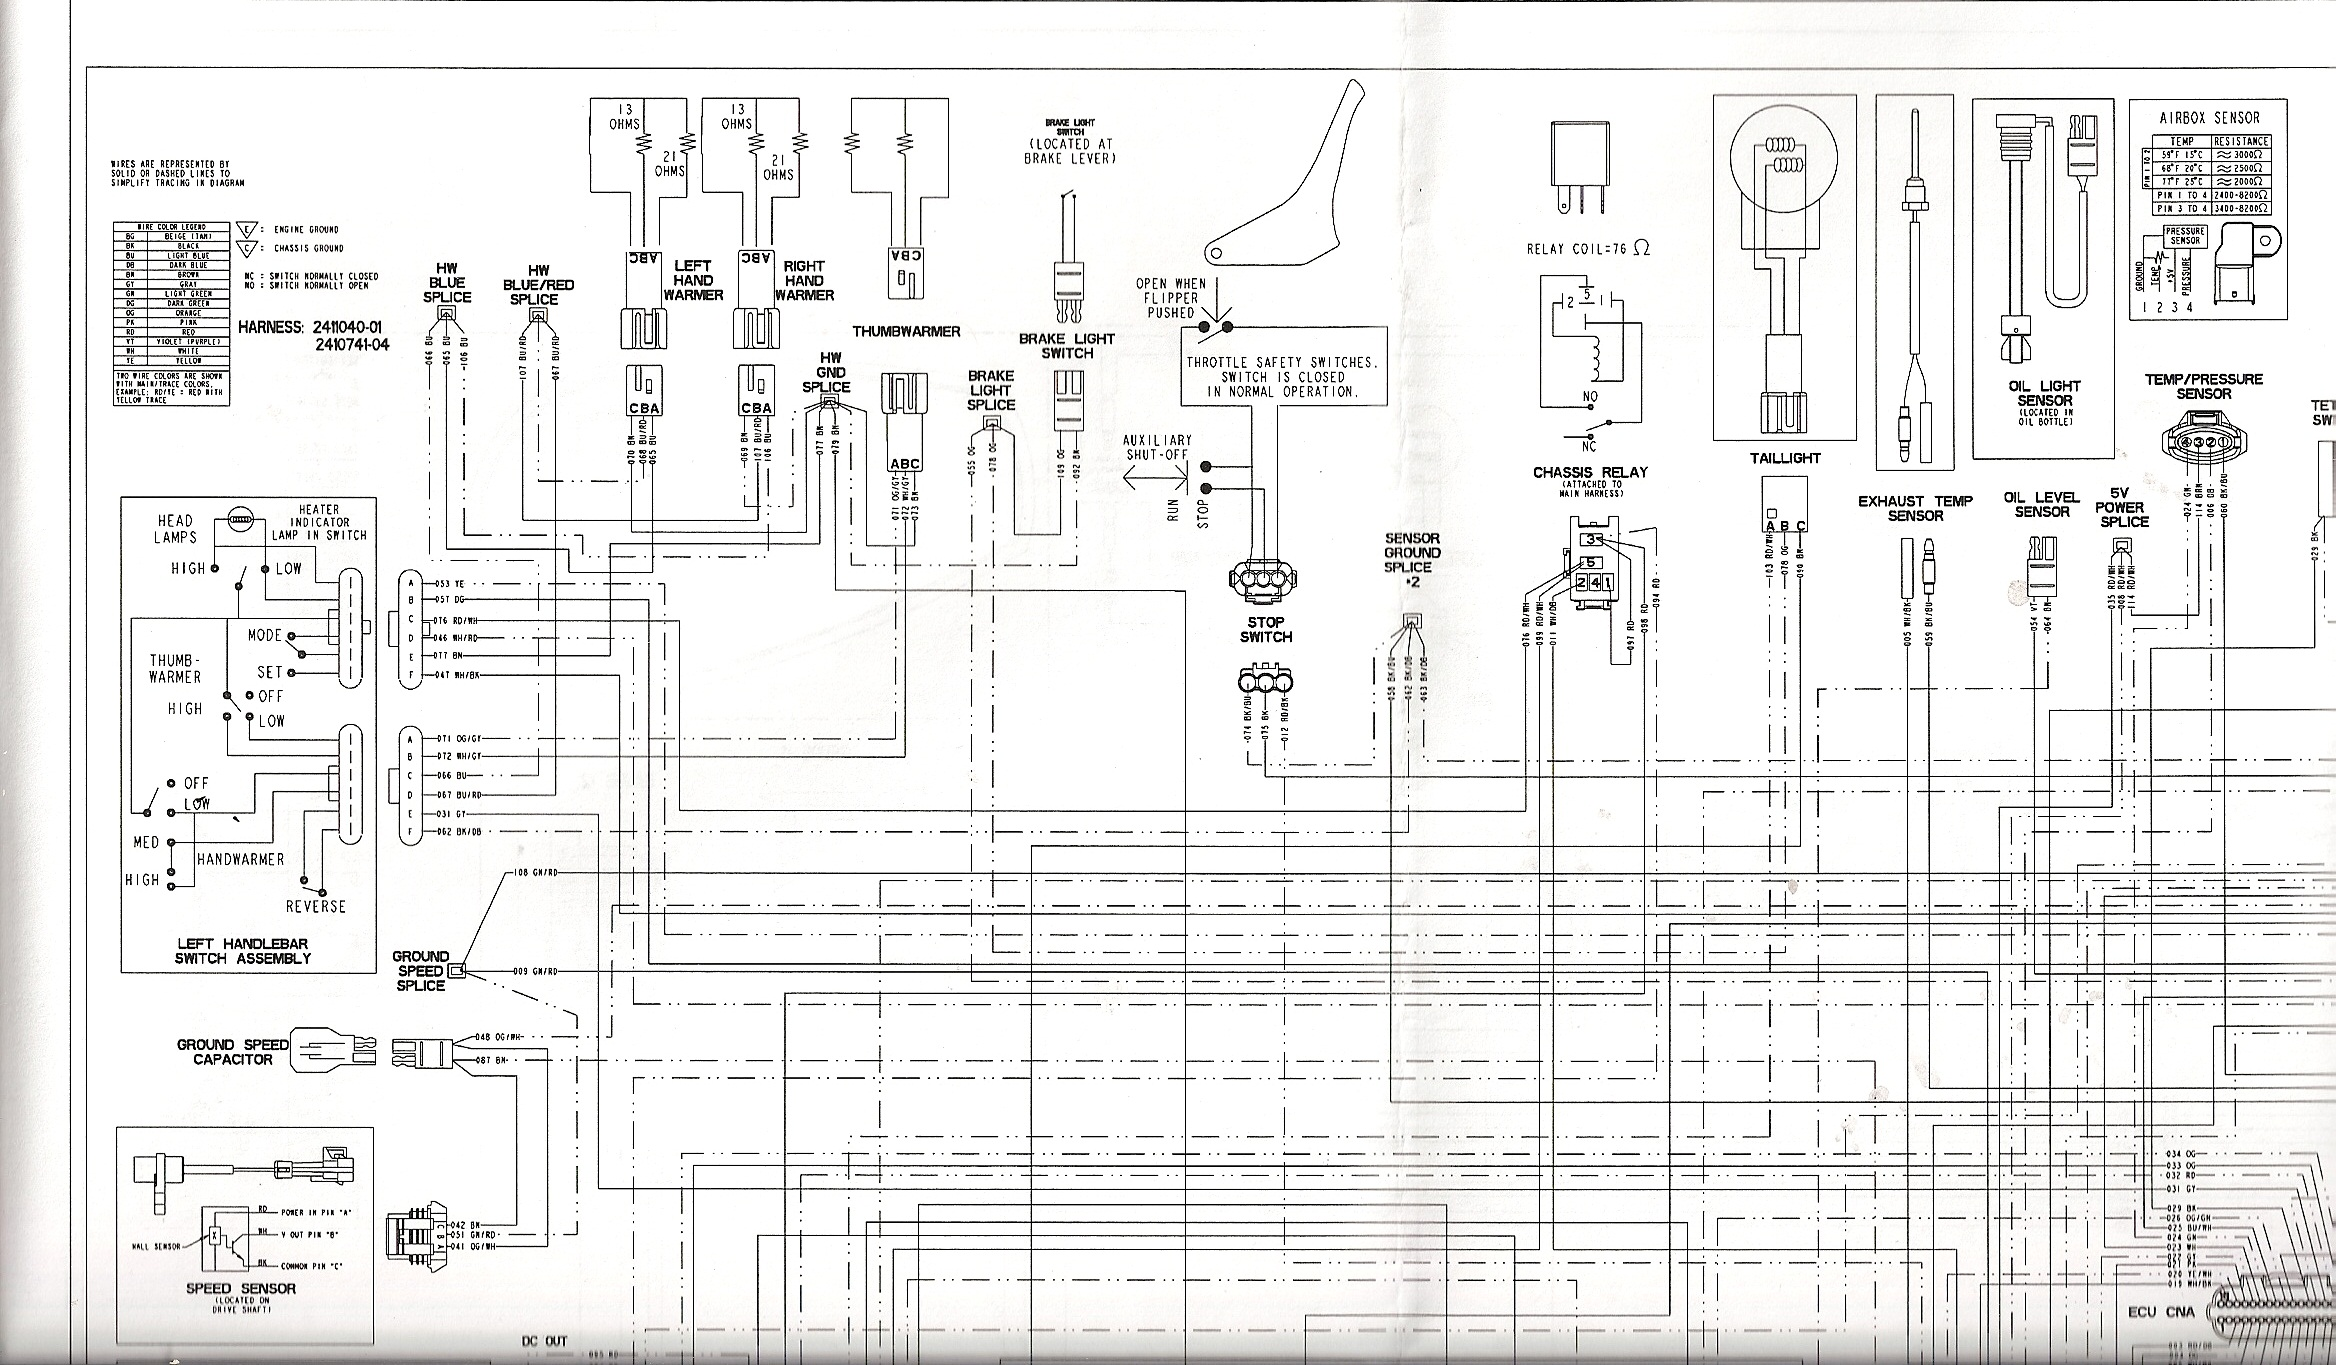 rmk08 wiring diagram polaris rzr 1000 the wiring diagram readingrat net polaris 500 wiring diagram at nearapp.co